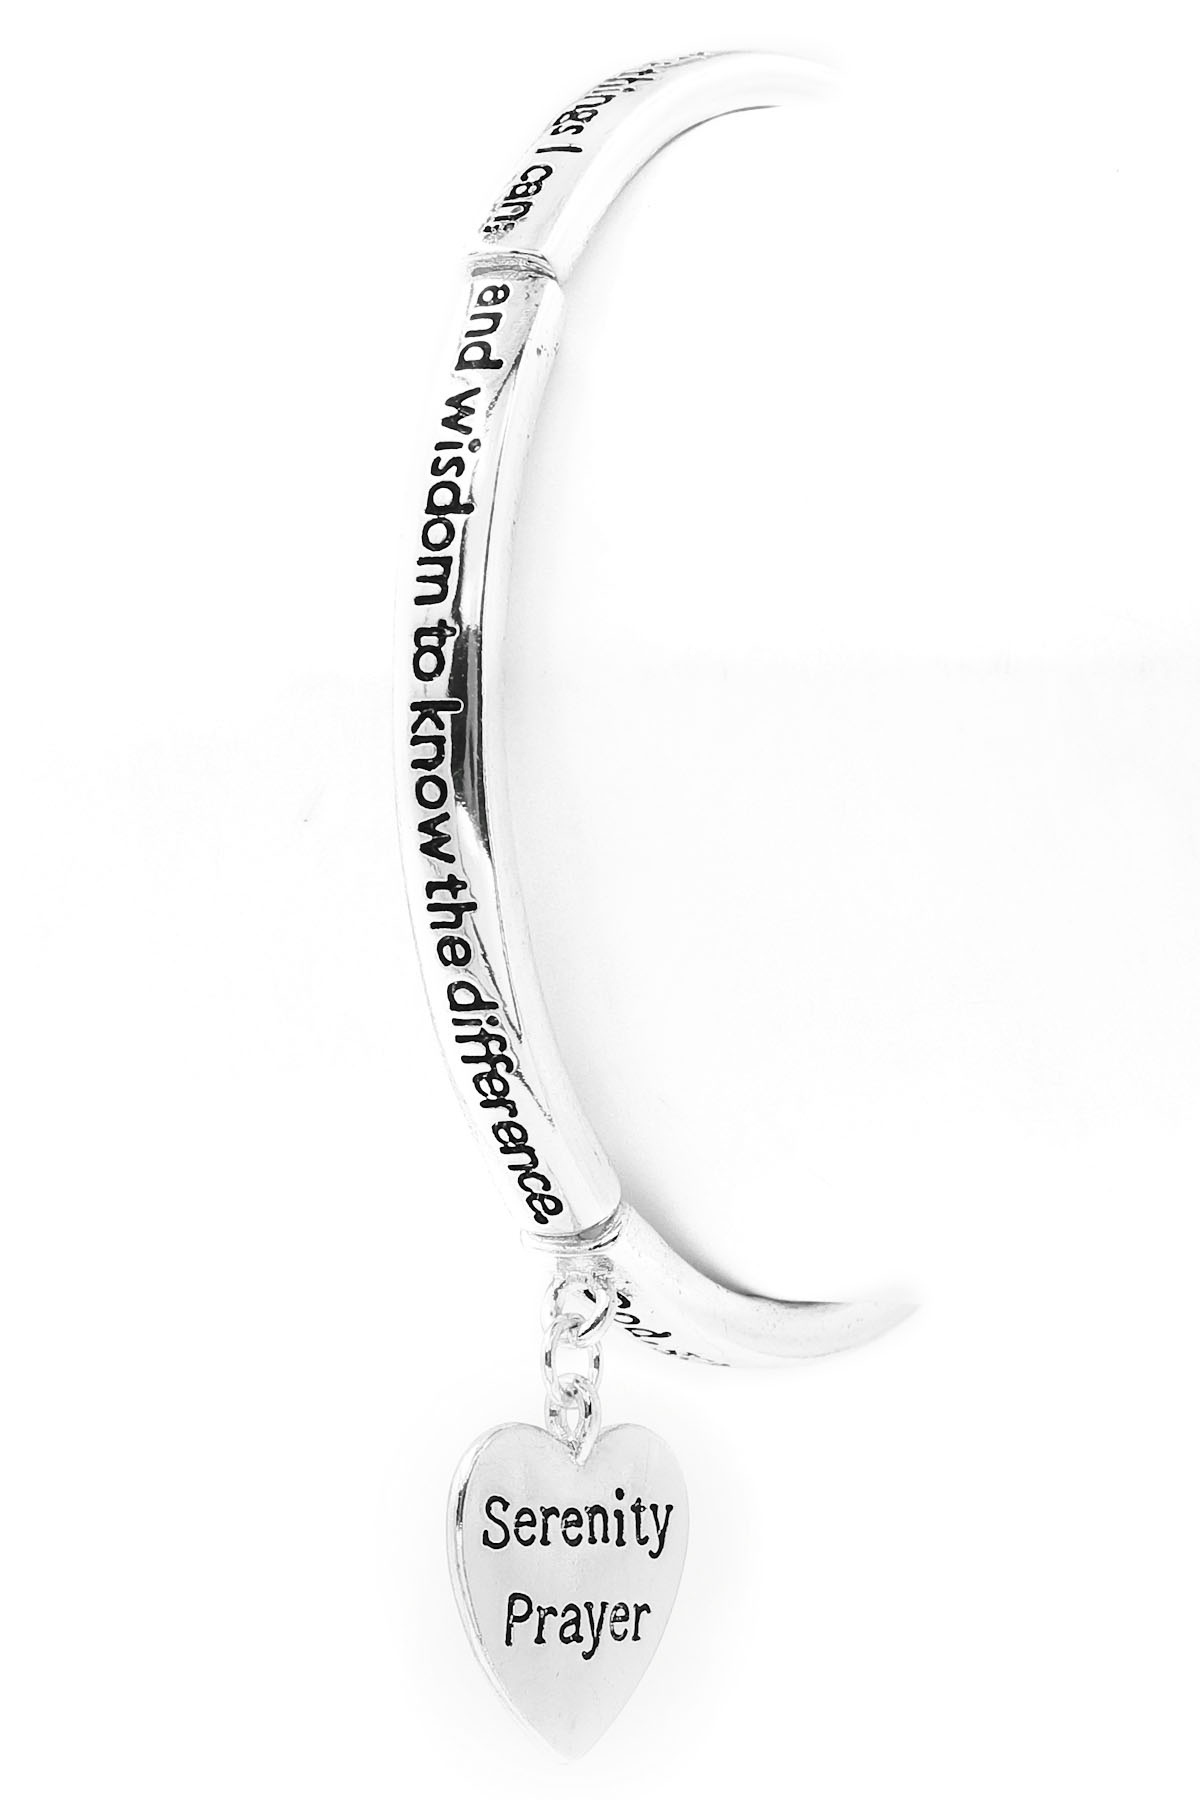 serenity symbol prayer tag view necklace blackspandaa front jewelry double black alcoholics dog aa pairmildogs anonymous